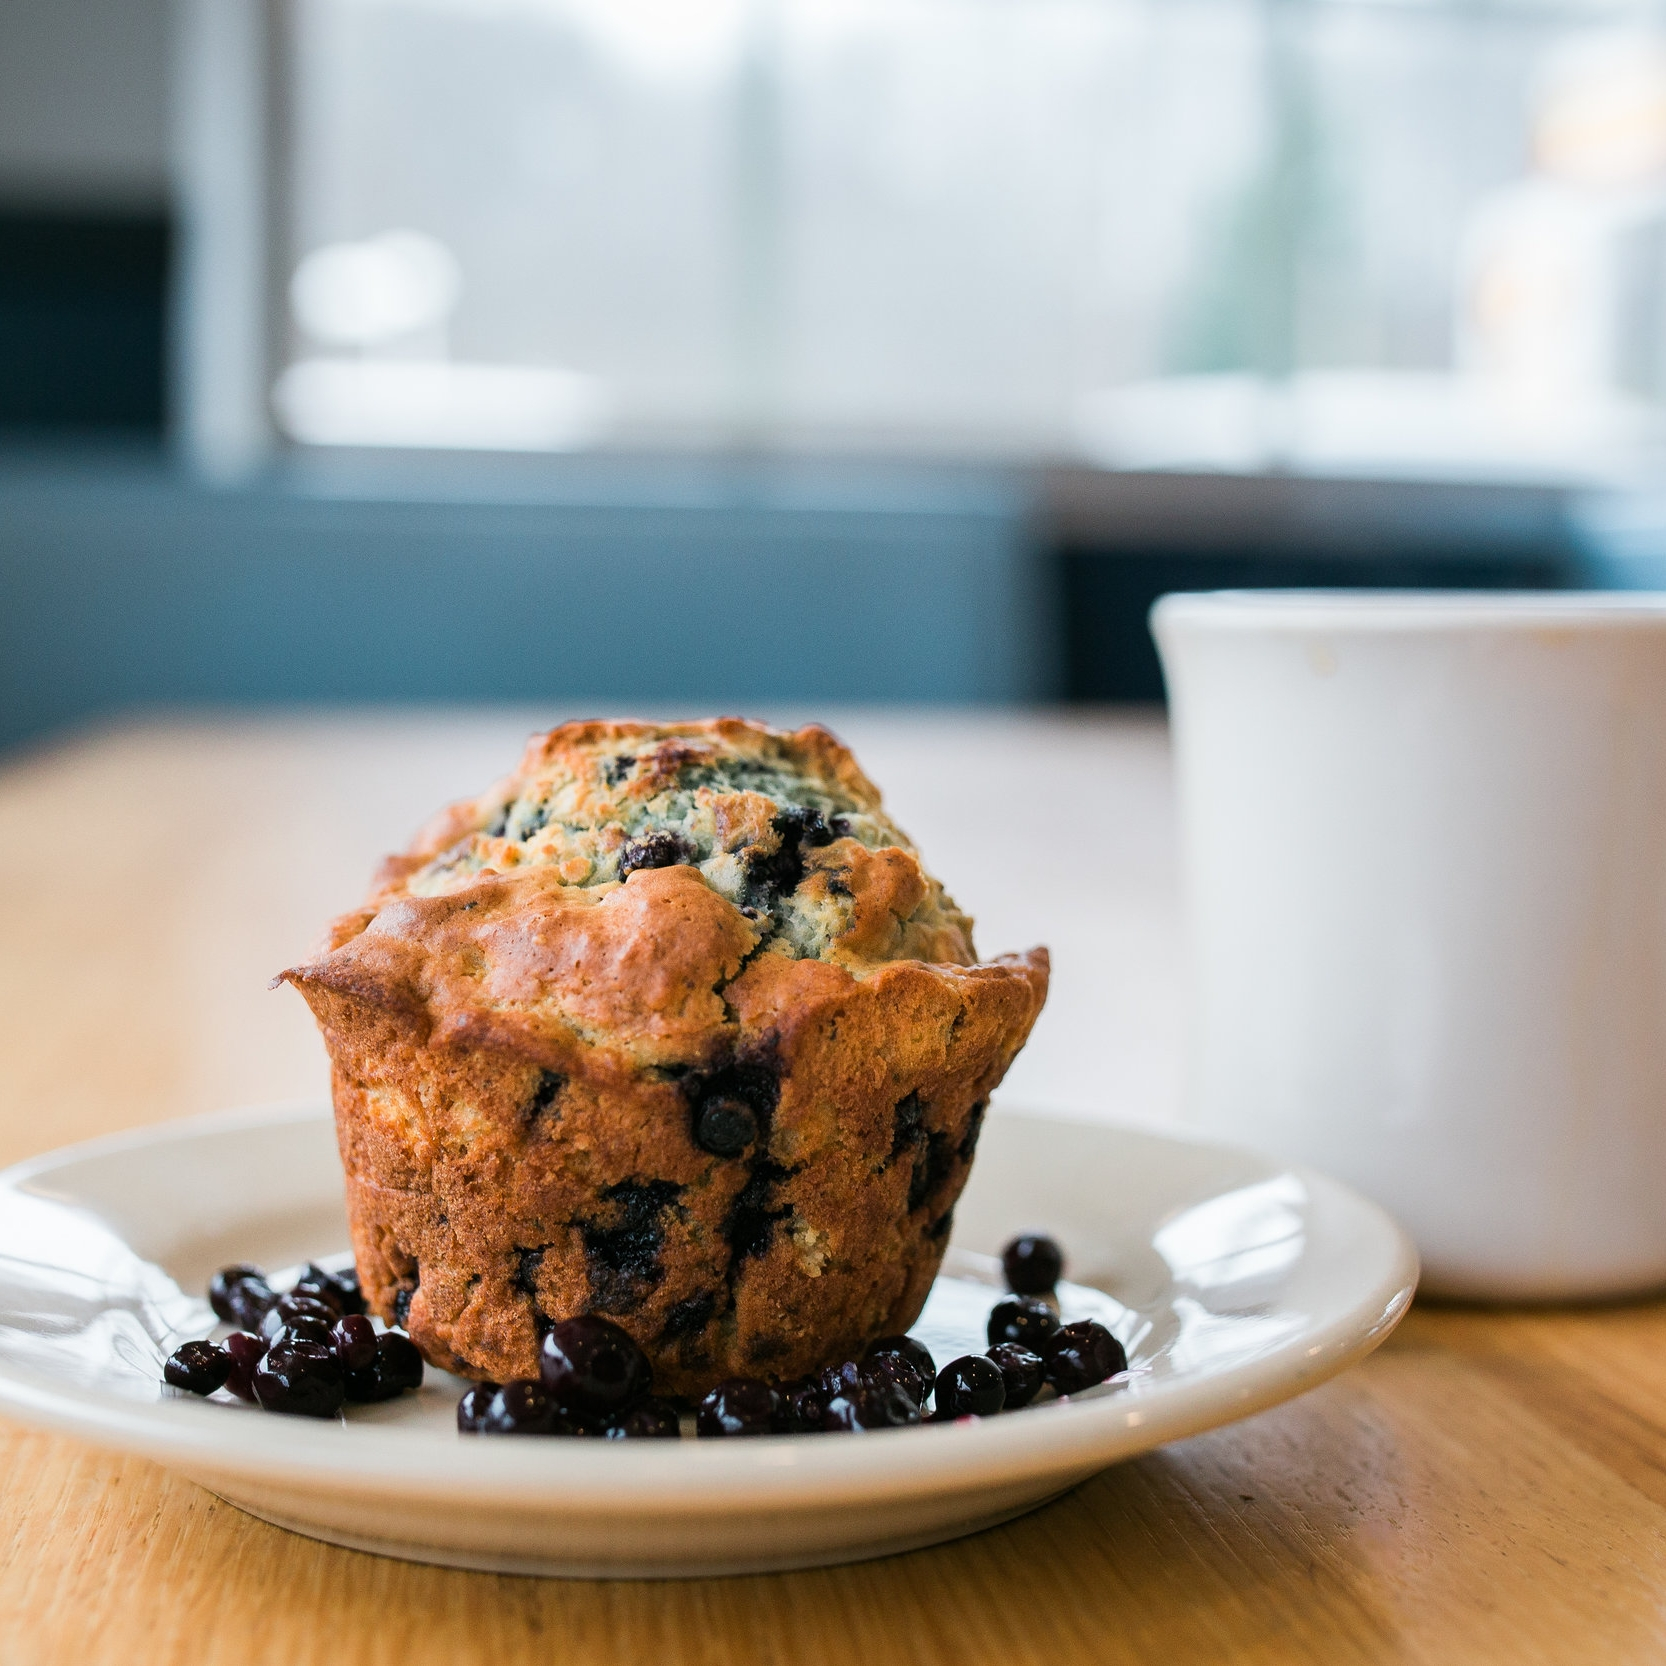 large blueberry muffin on a saucer surrounded by blueberries and next to a cup of coffee